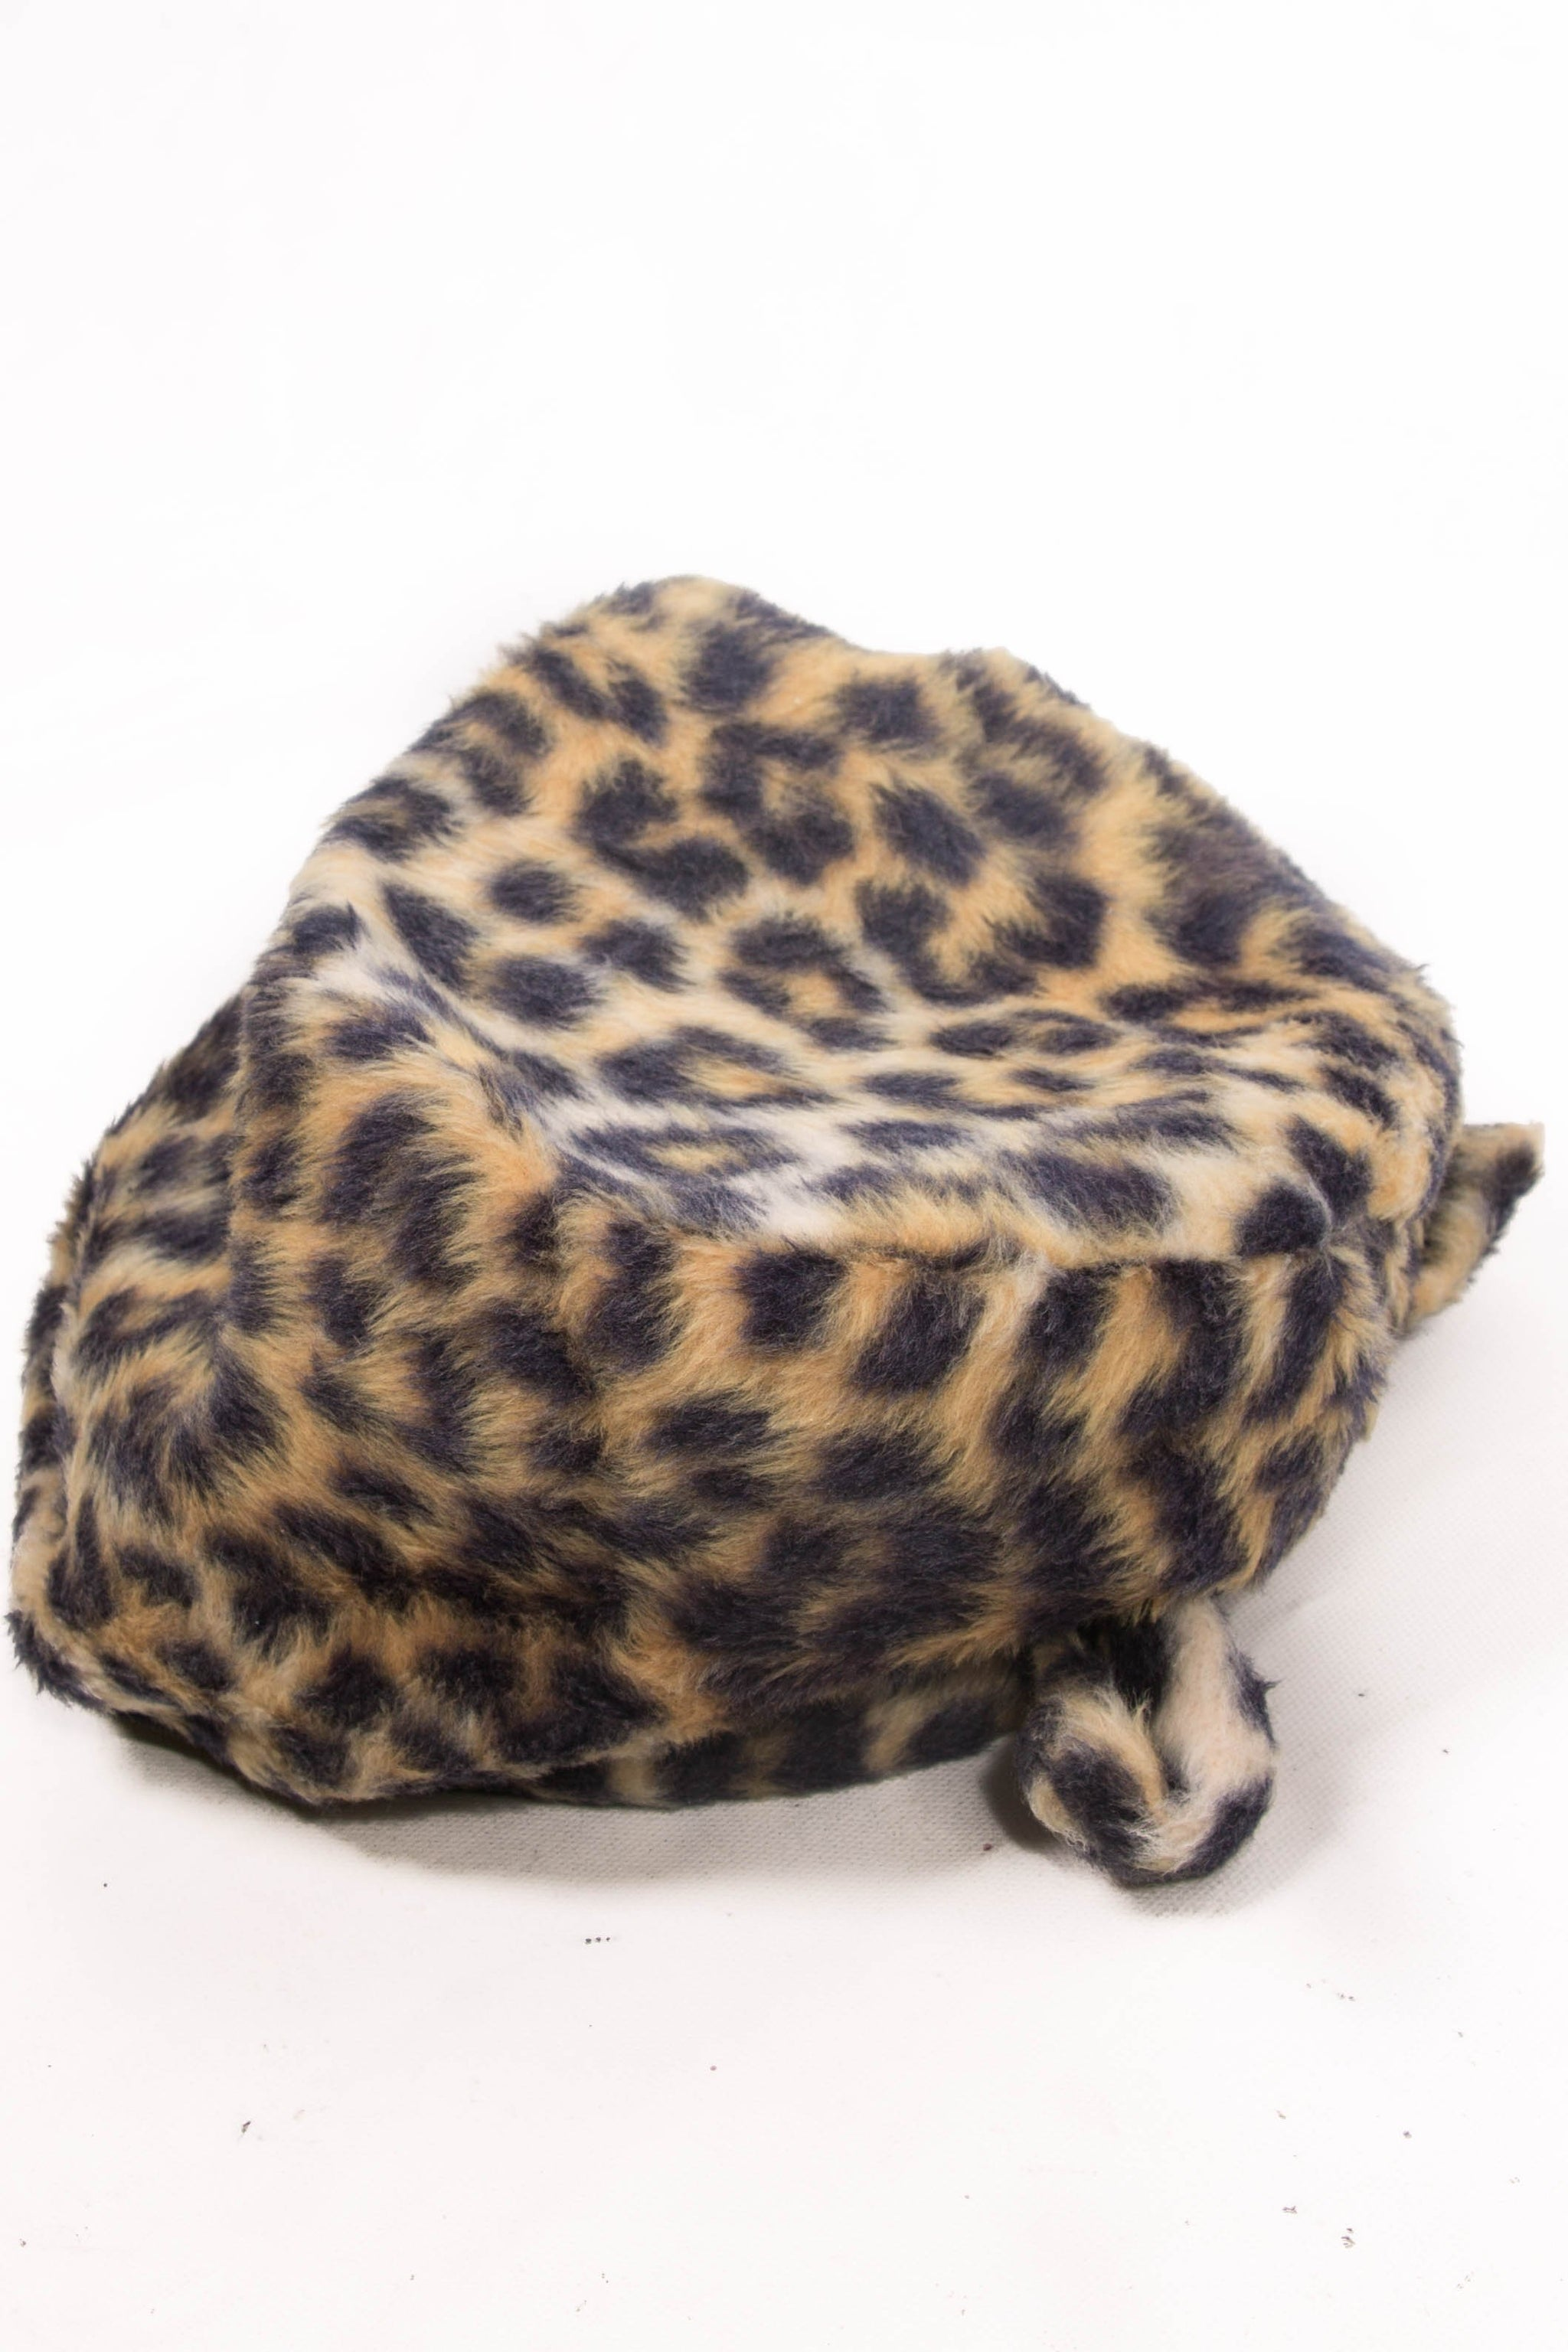 c7051193ca6db ... low price cheetah hat cat cute cats in hats 7bbd1 74169